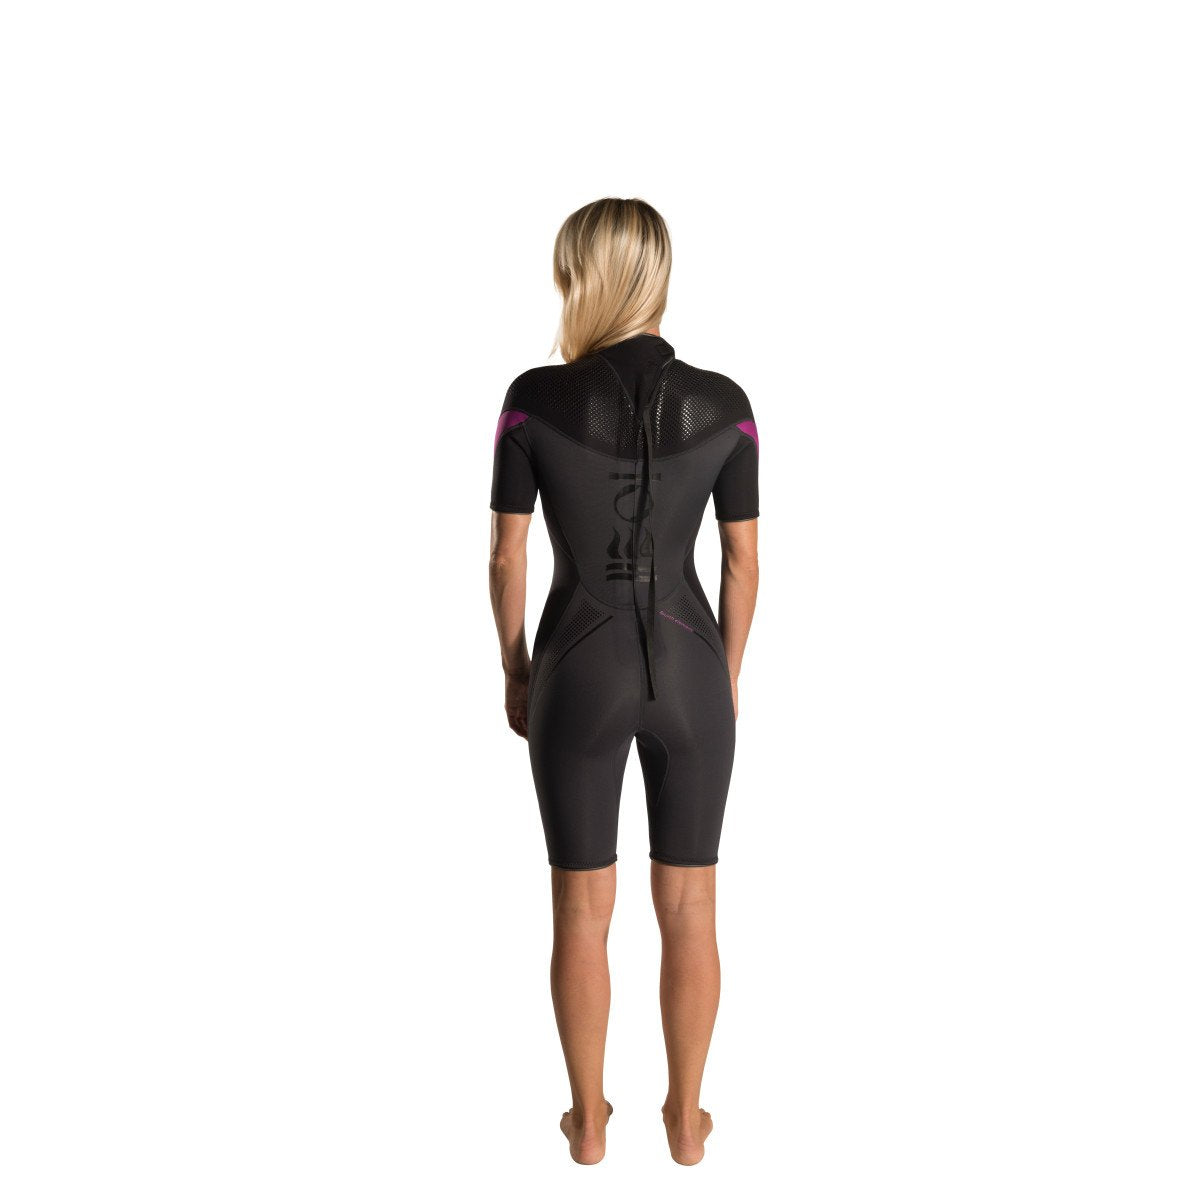 4cd37b3125 ... Xenos 3mm Shortie Wetsuit  Womens - Oyster Diving Equipment